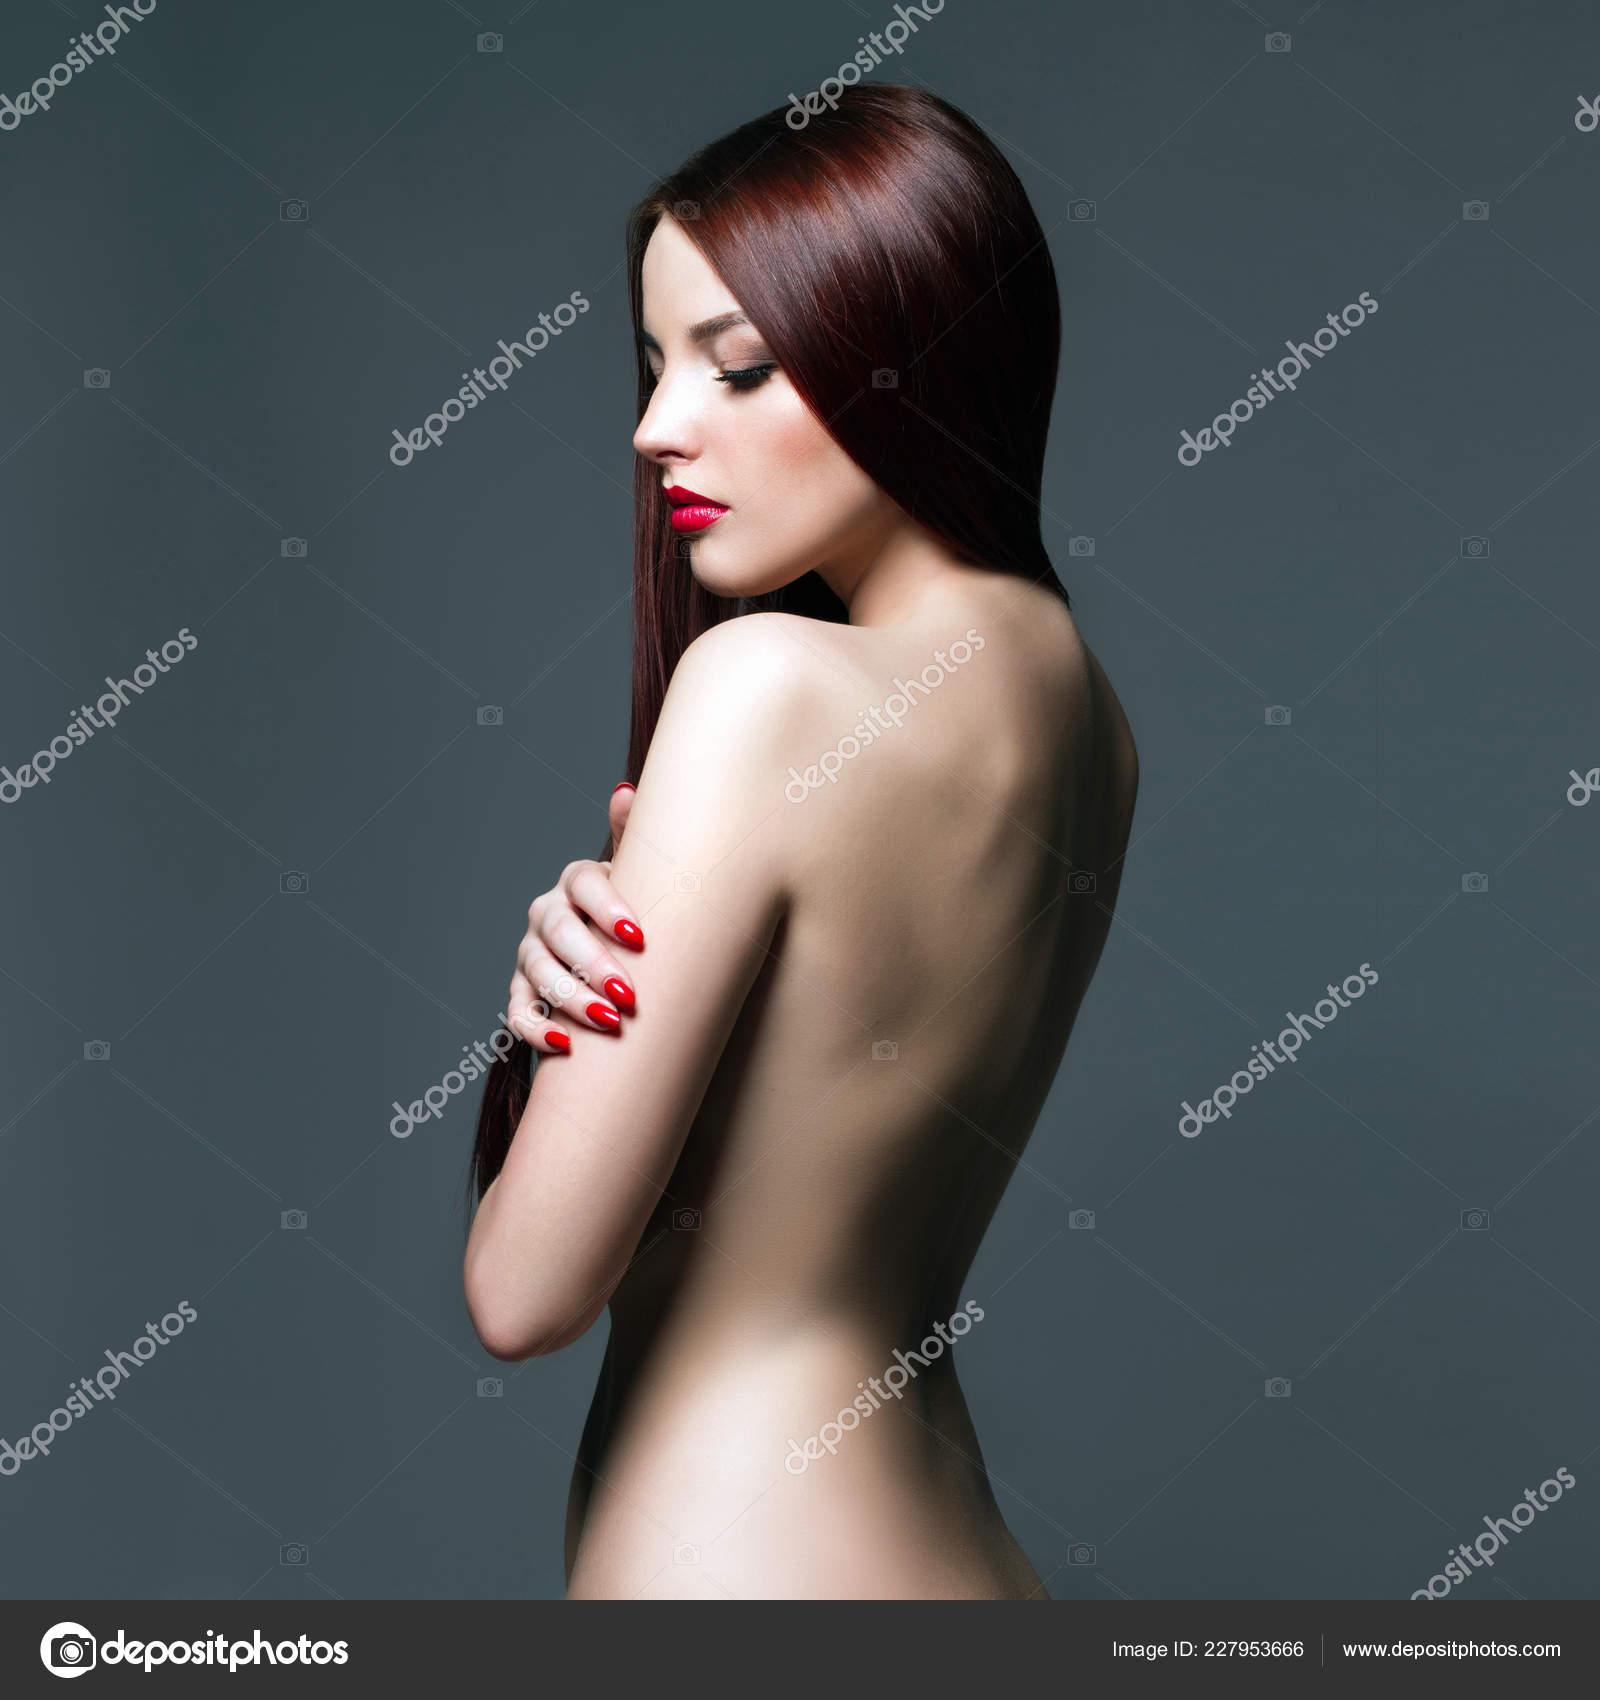 Possible speak body girl flash naked full are not right